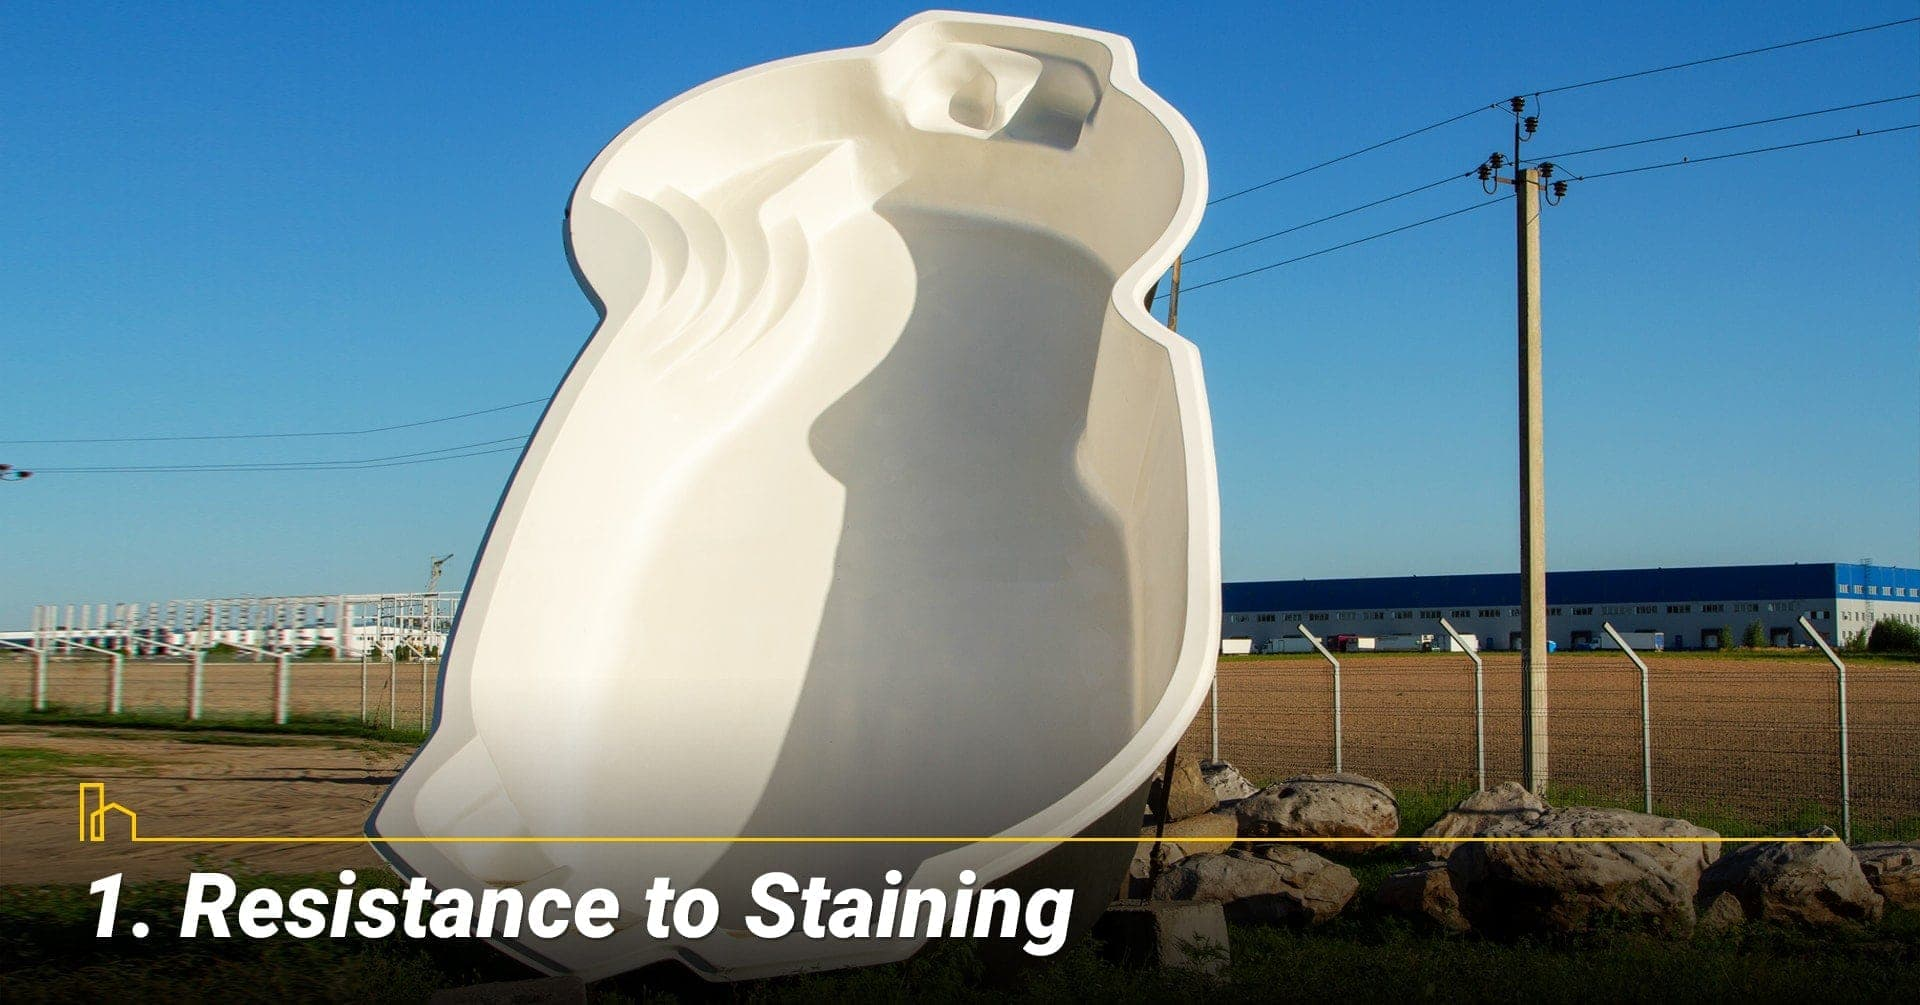 Resistance to Staining, protection from stains